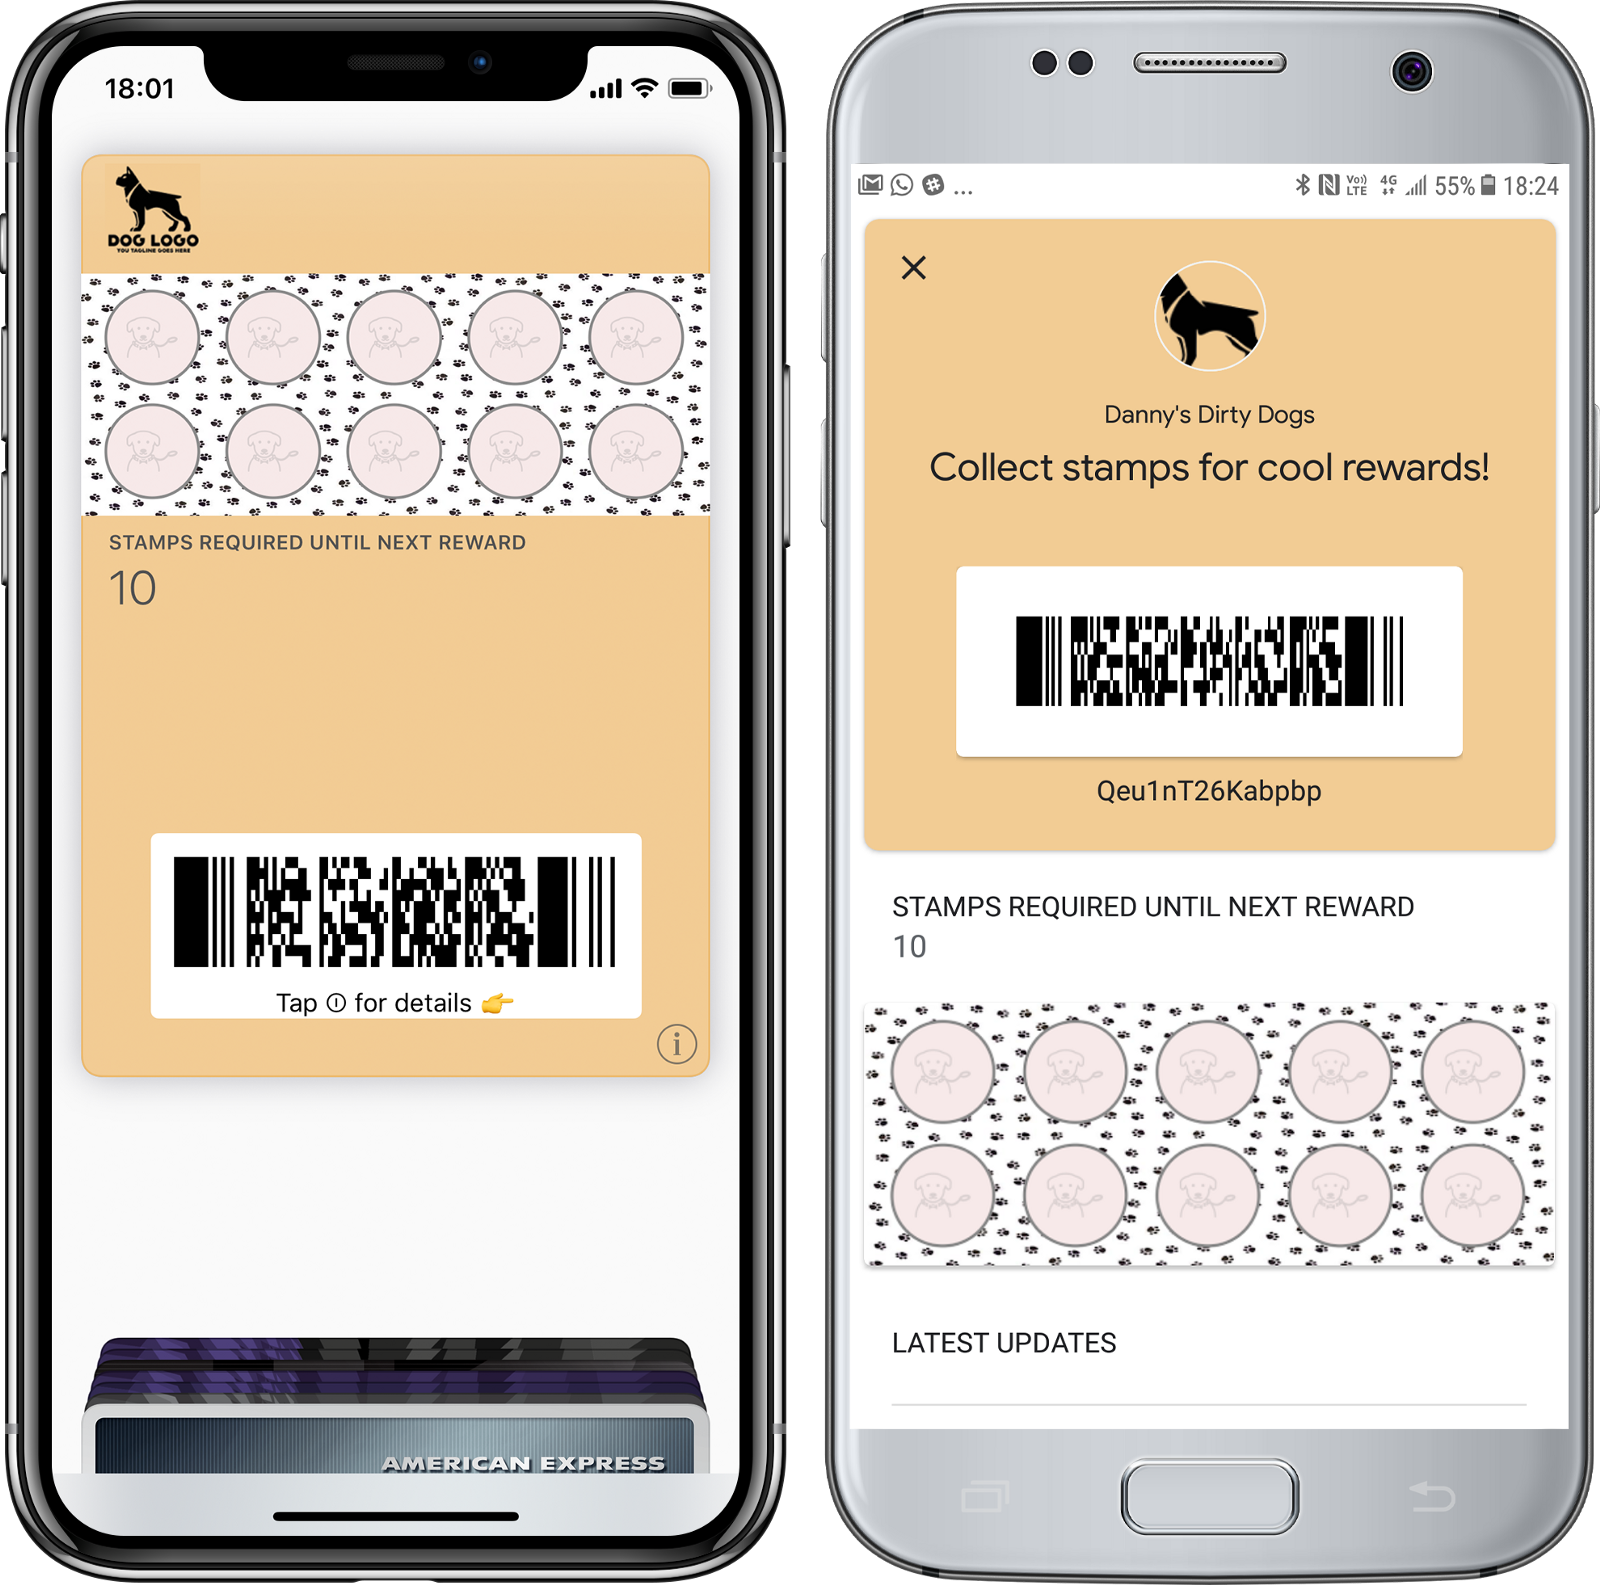 By The End Of This Post You Will Be Able To Go Live With Your Digital Loyalty Program And Start Distributing Mobile Stamp Cards Customers Like